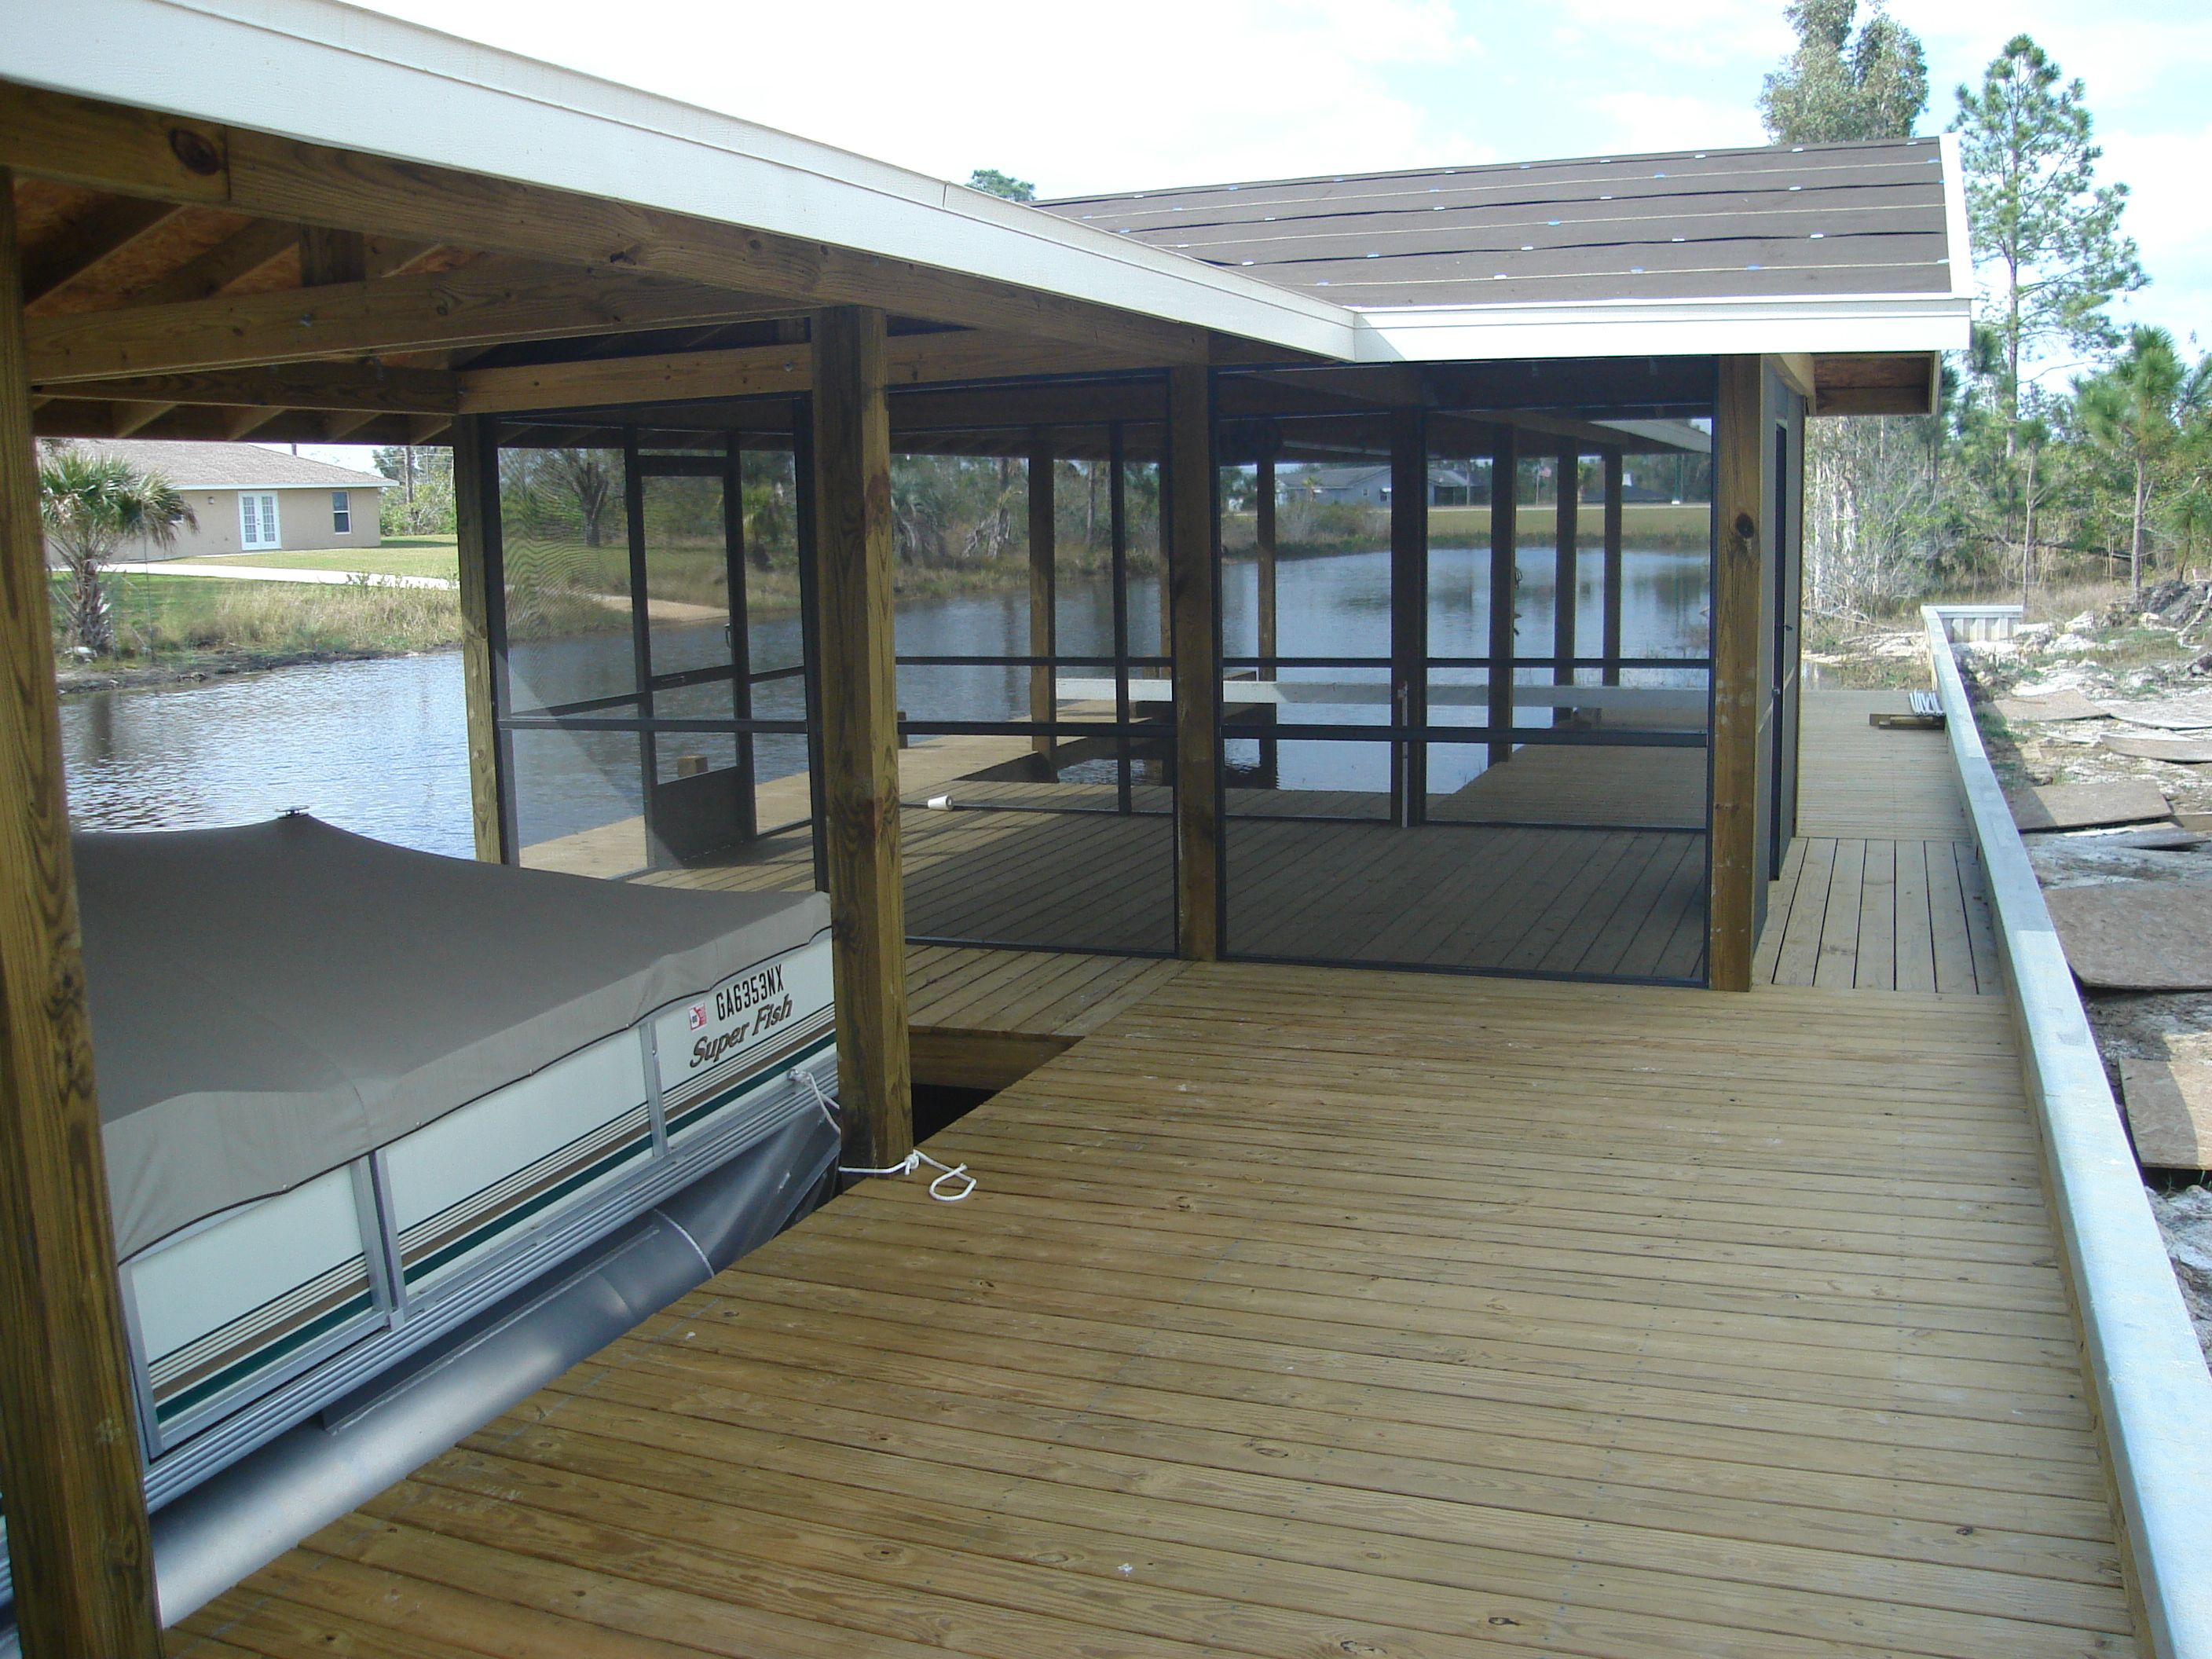 Dock Furniture Ideas Screened Entertainment Room On Boat Dock Docks